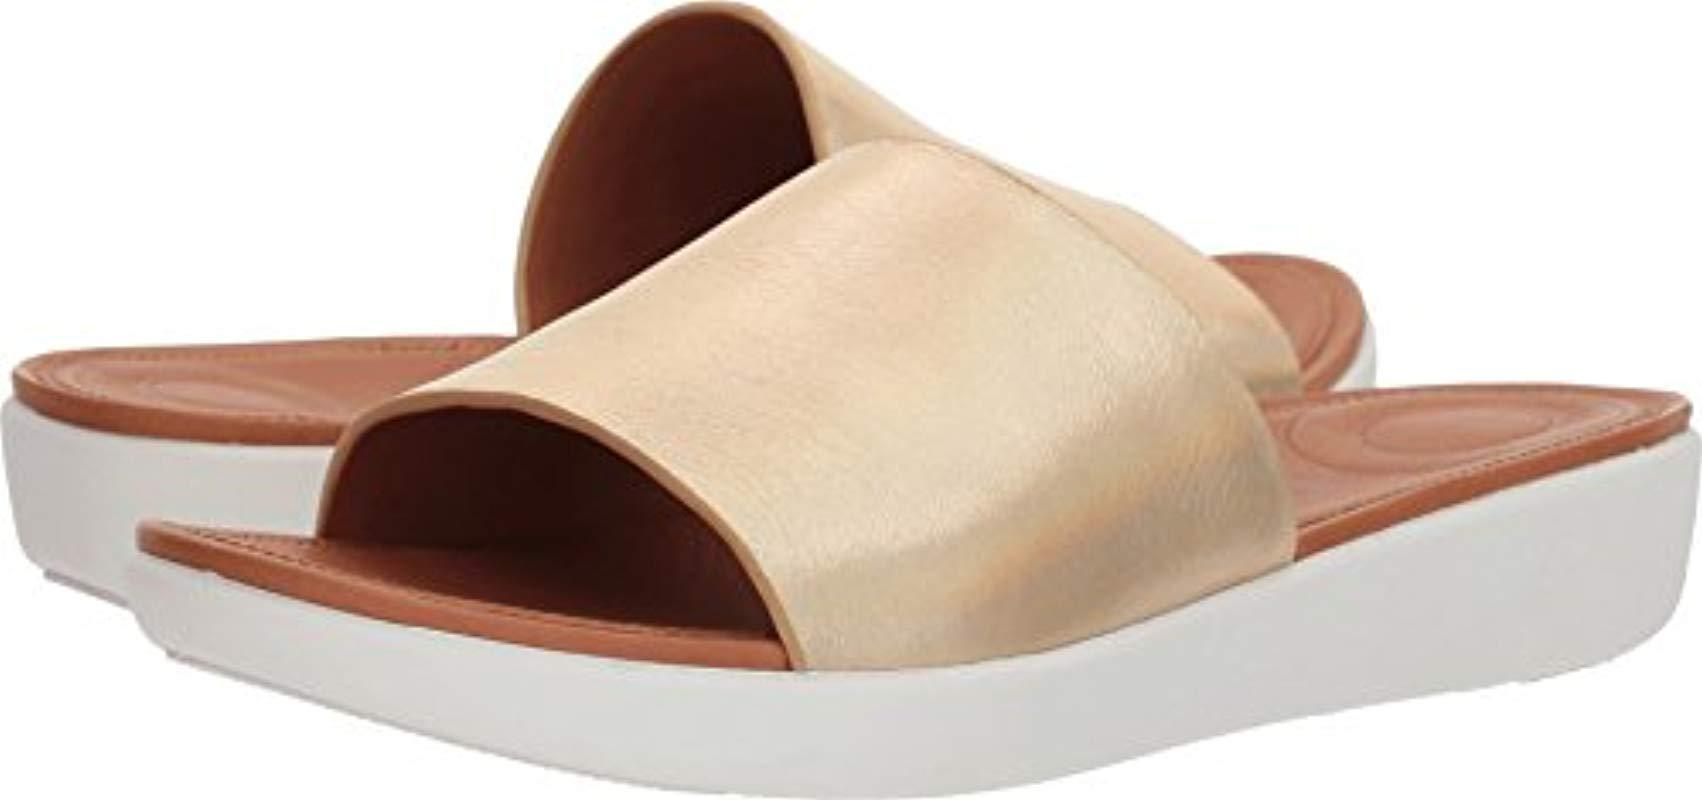 9ccdd1601fd Fitflop. Women s Sola Slides-iridescent Leather Sandal